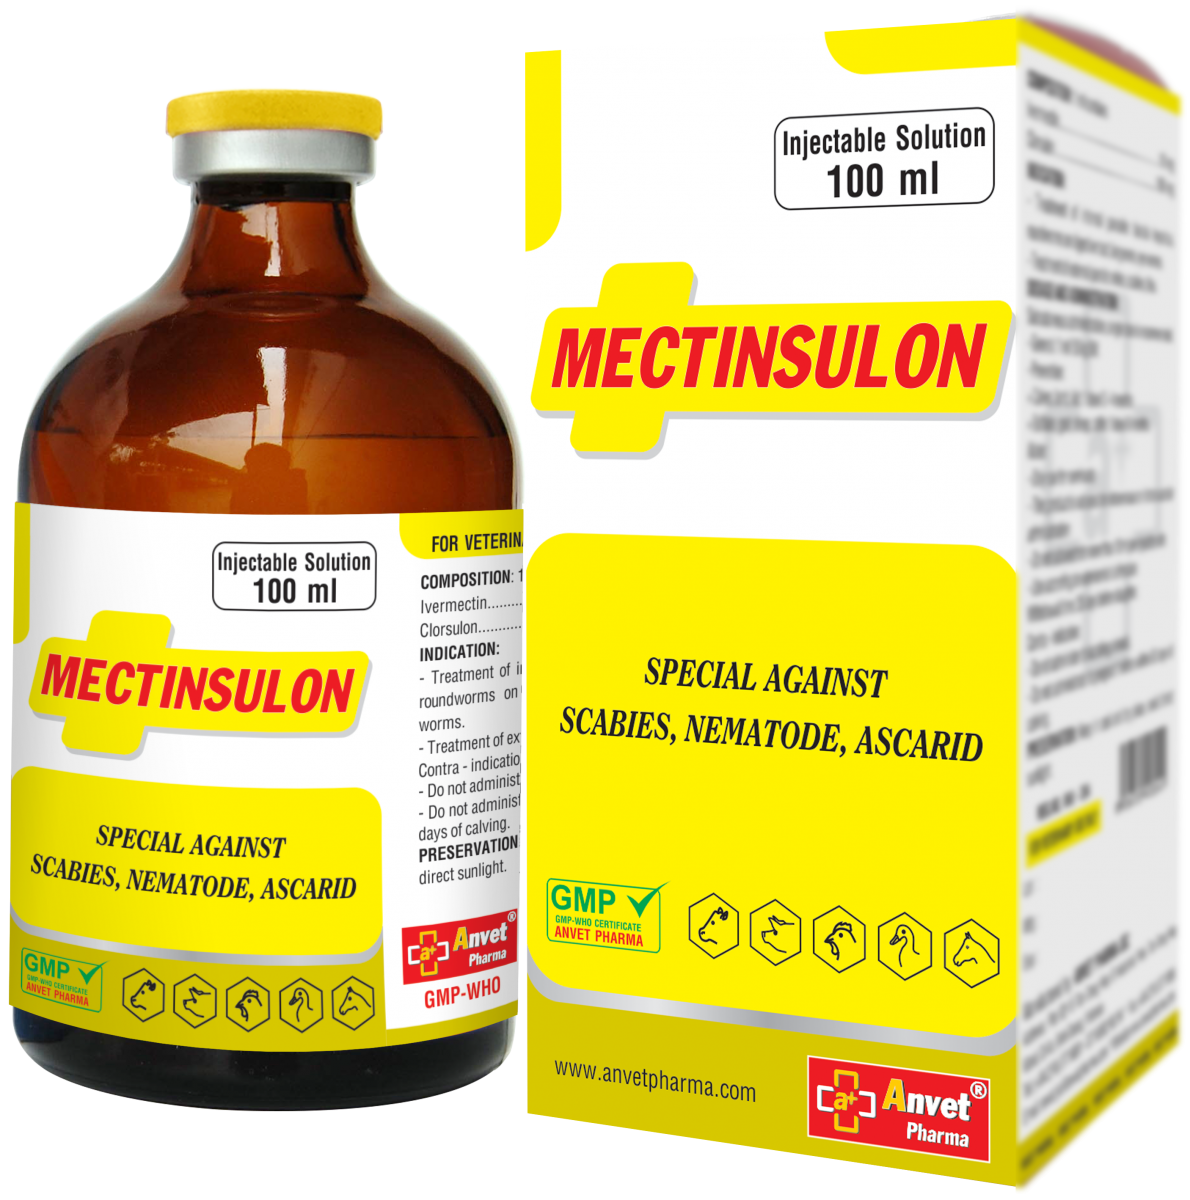 MECTINSULON